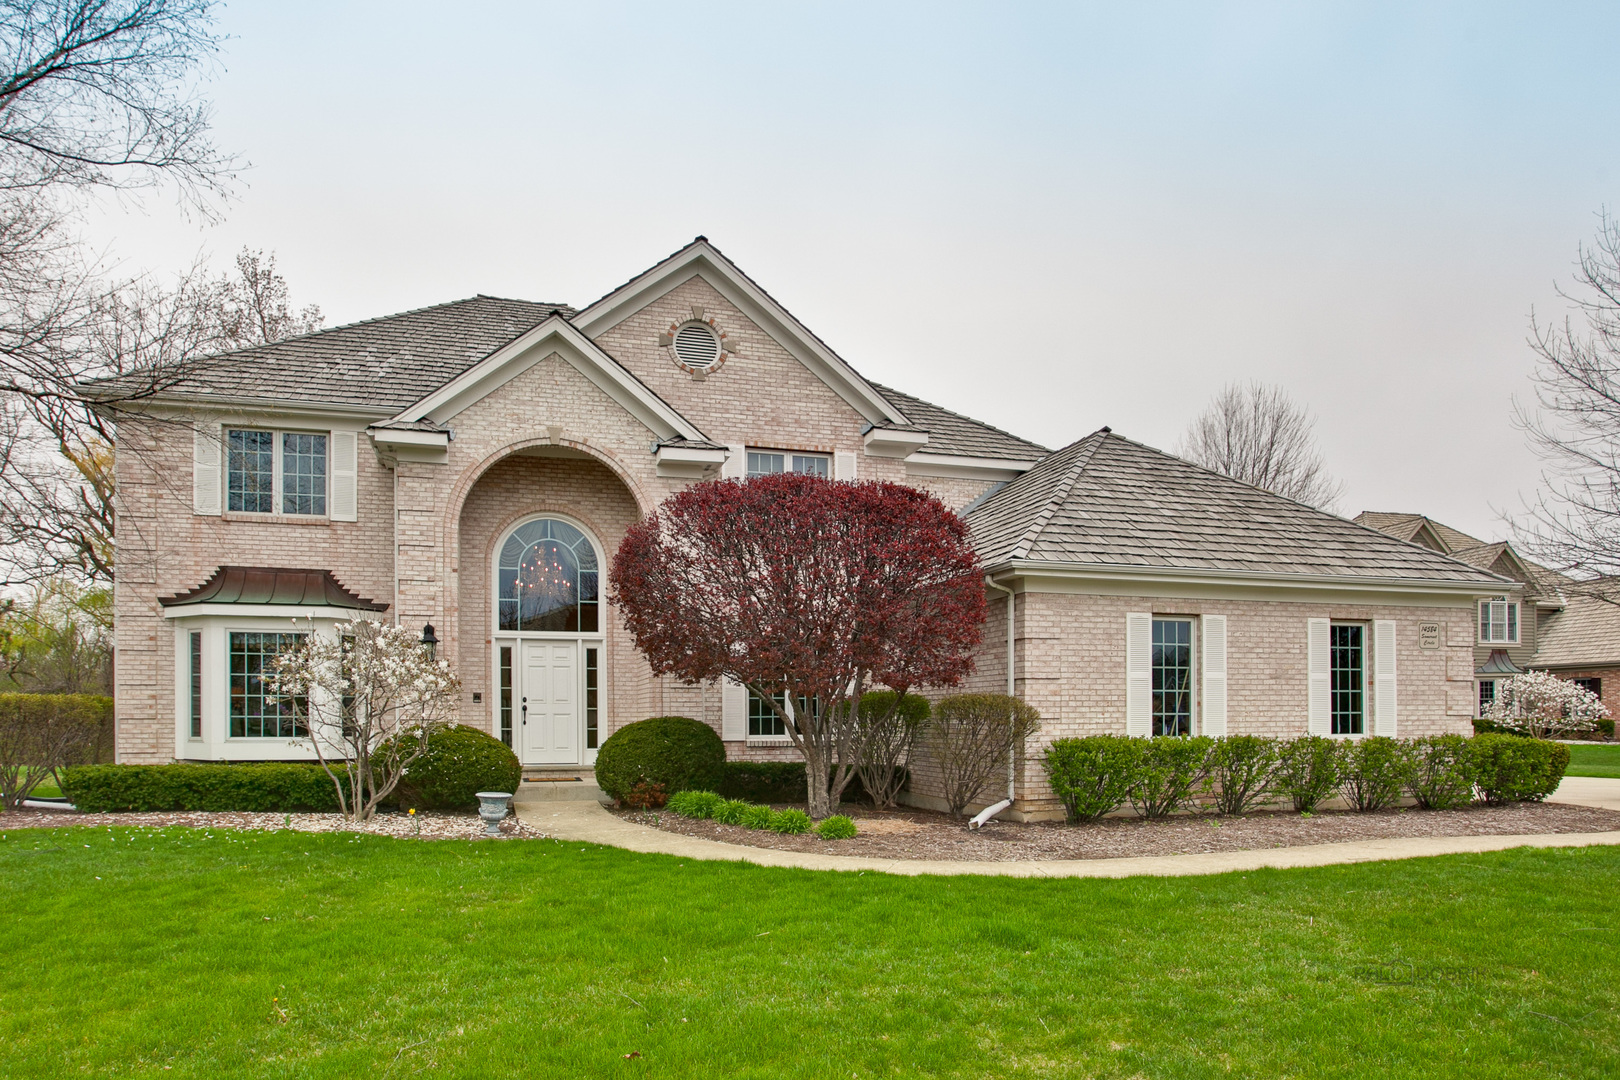 14584 North Somerset Circle, Libertyville, Illinois 60048